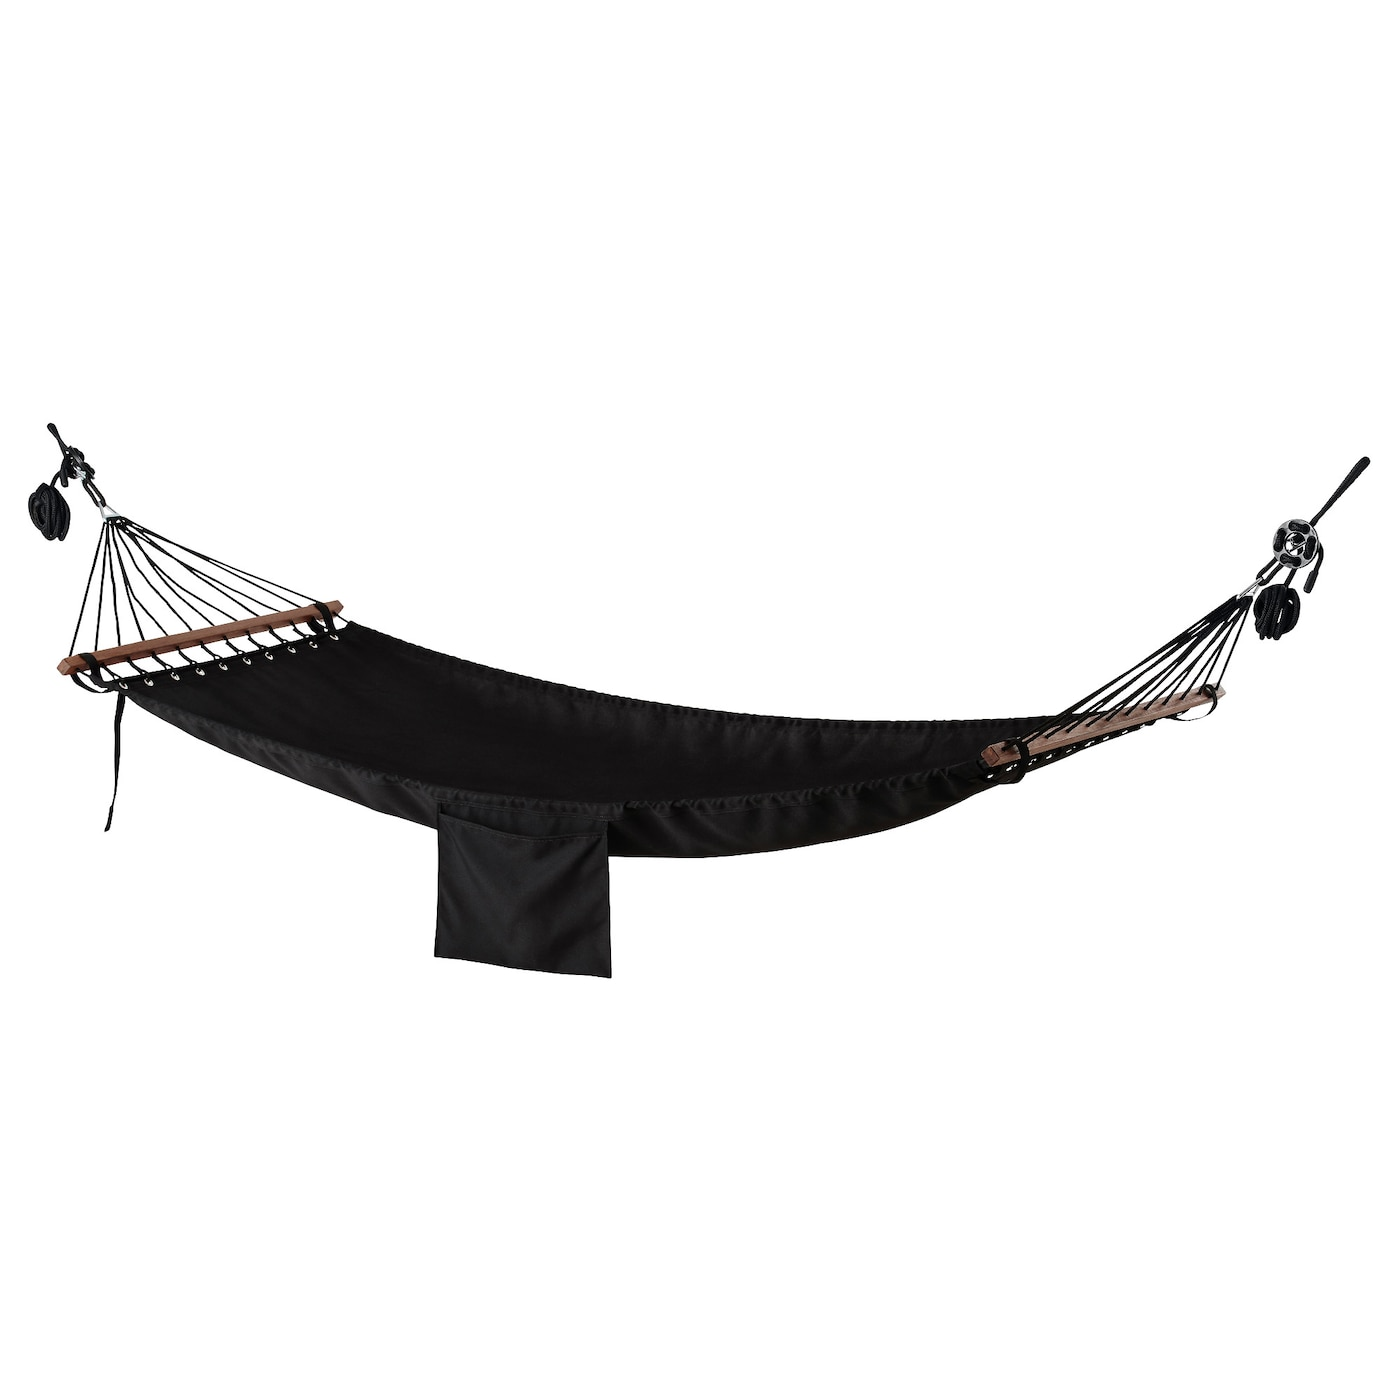 camping products top azul hammock madera images the hammocks eno outdoor hammocksneedtrees best companies plant trees that